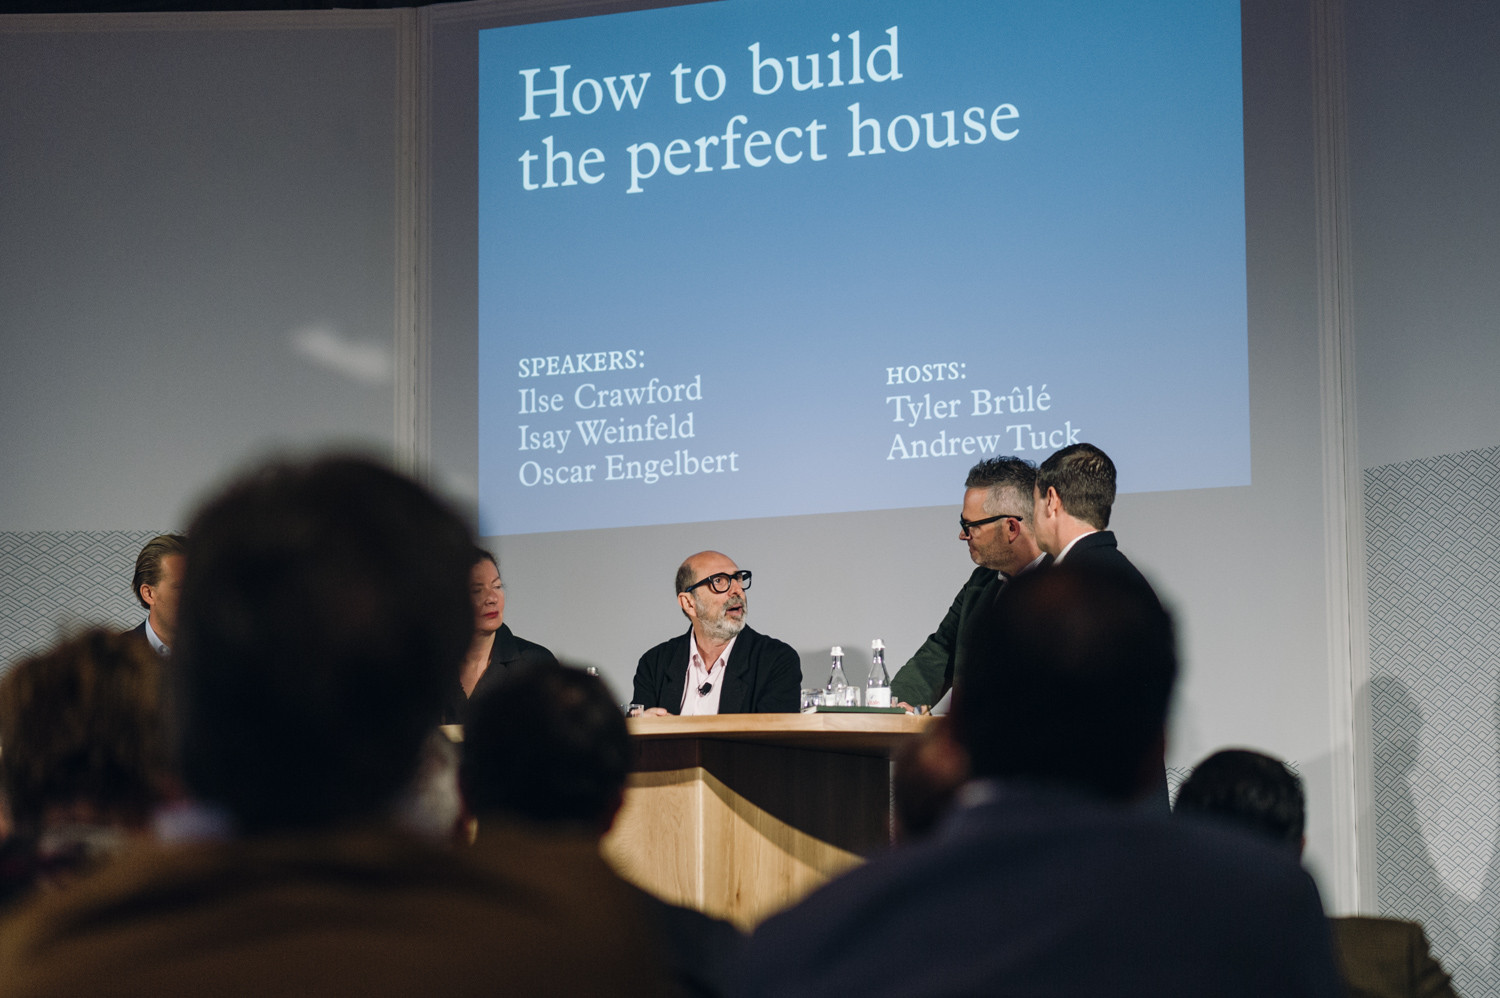 Monocle's Inaugural Conference In Lisbon Asks: What Is Quality Of Life?, Isay Weinfeld discussing 'How to build the perfect house'. Image © Rodrigo Cardoso